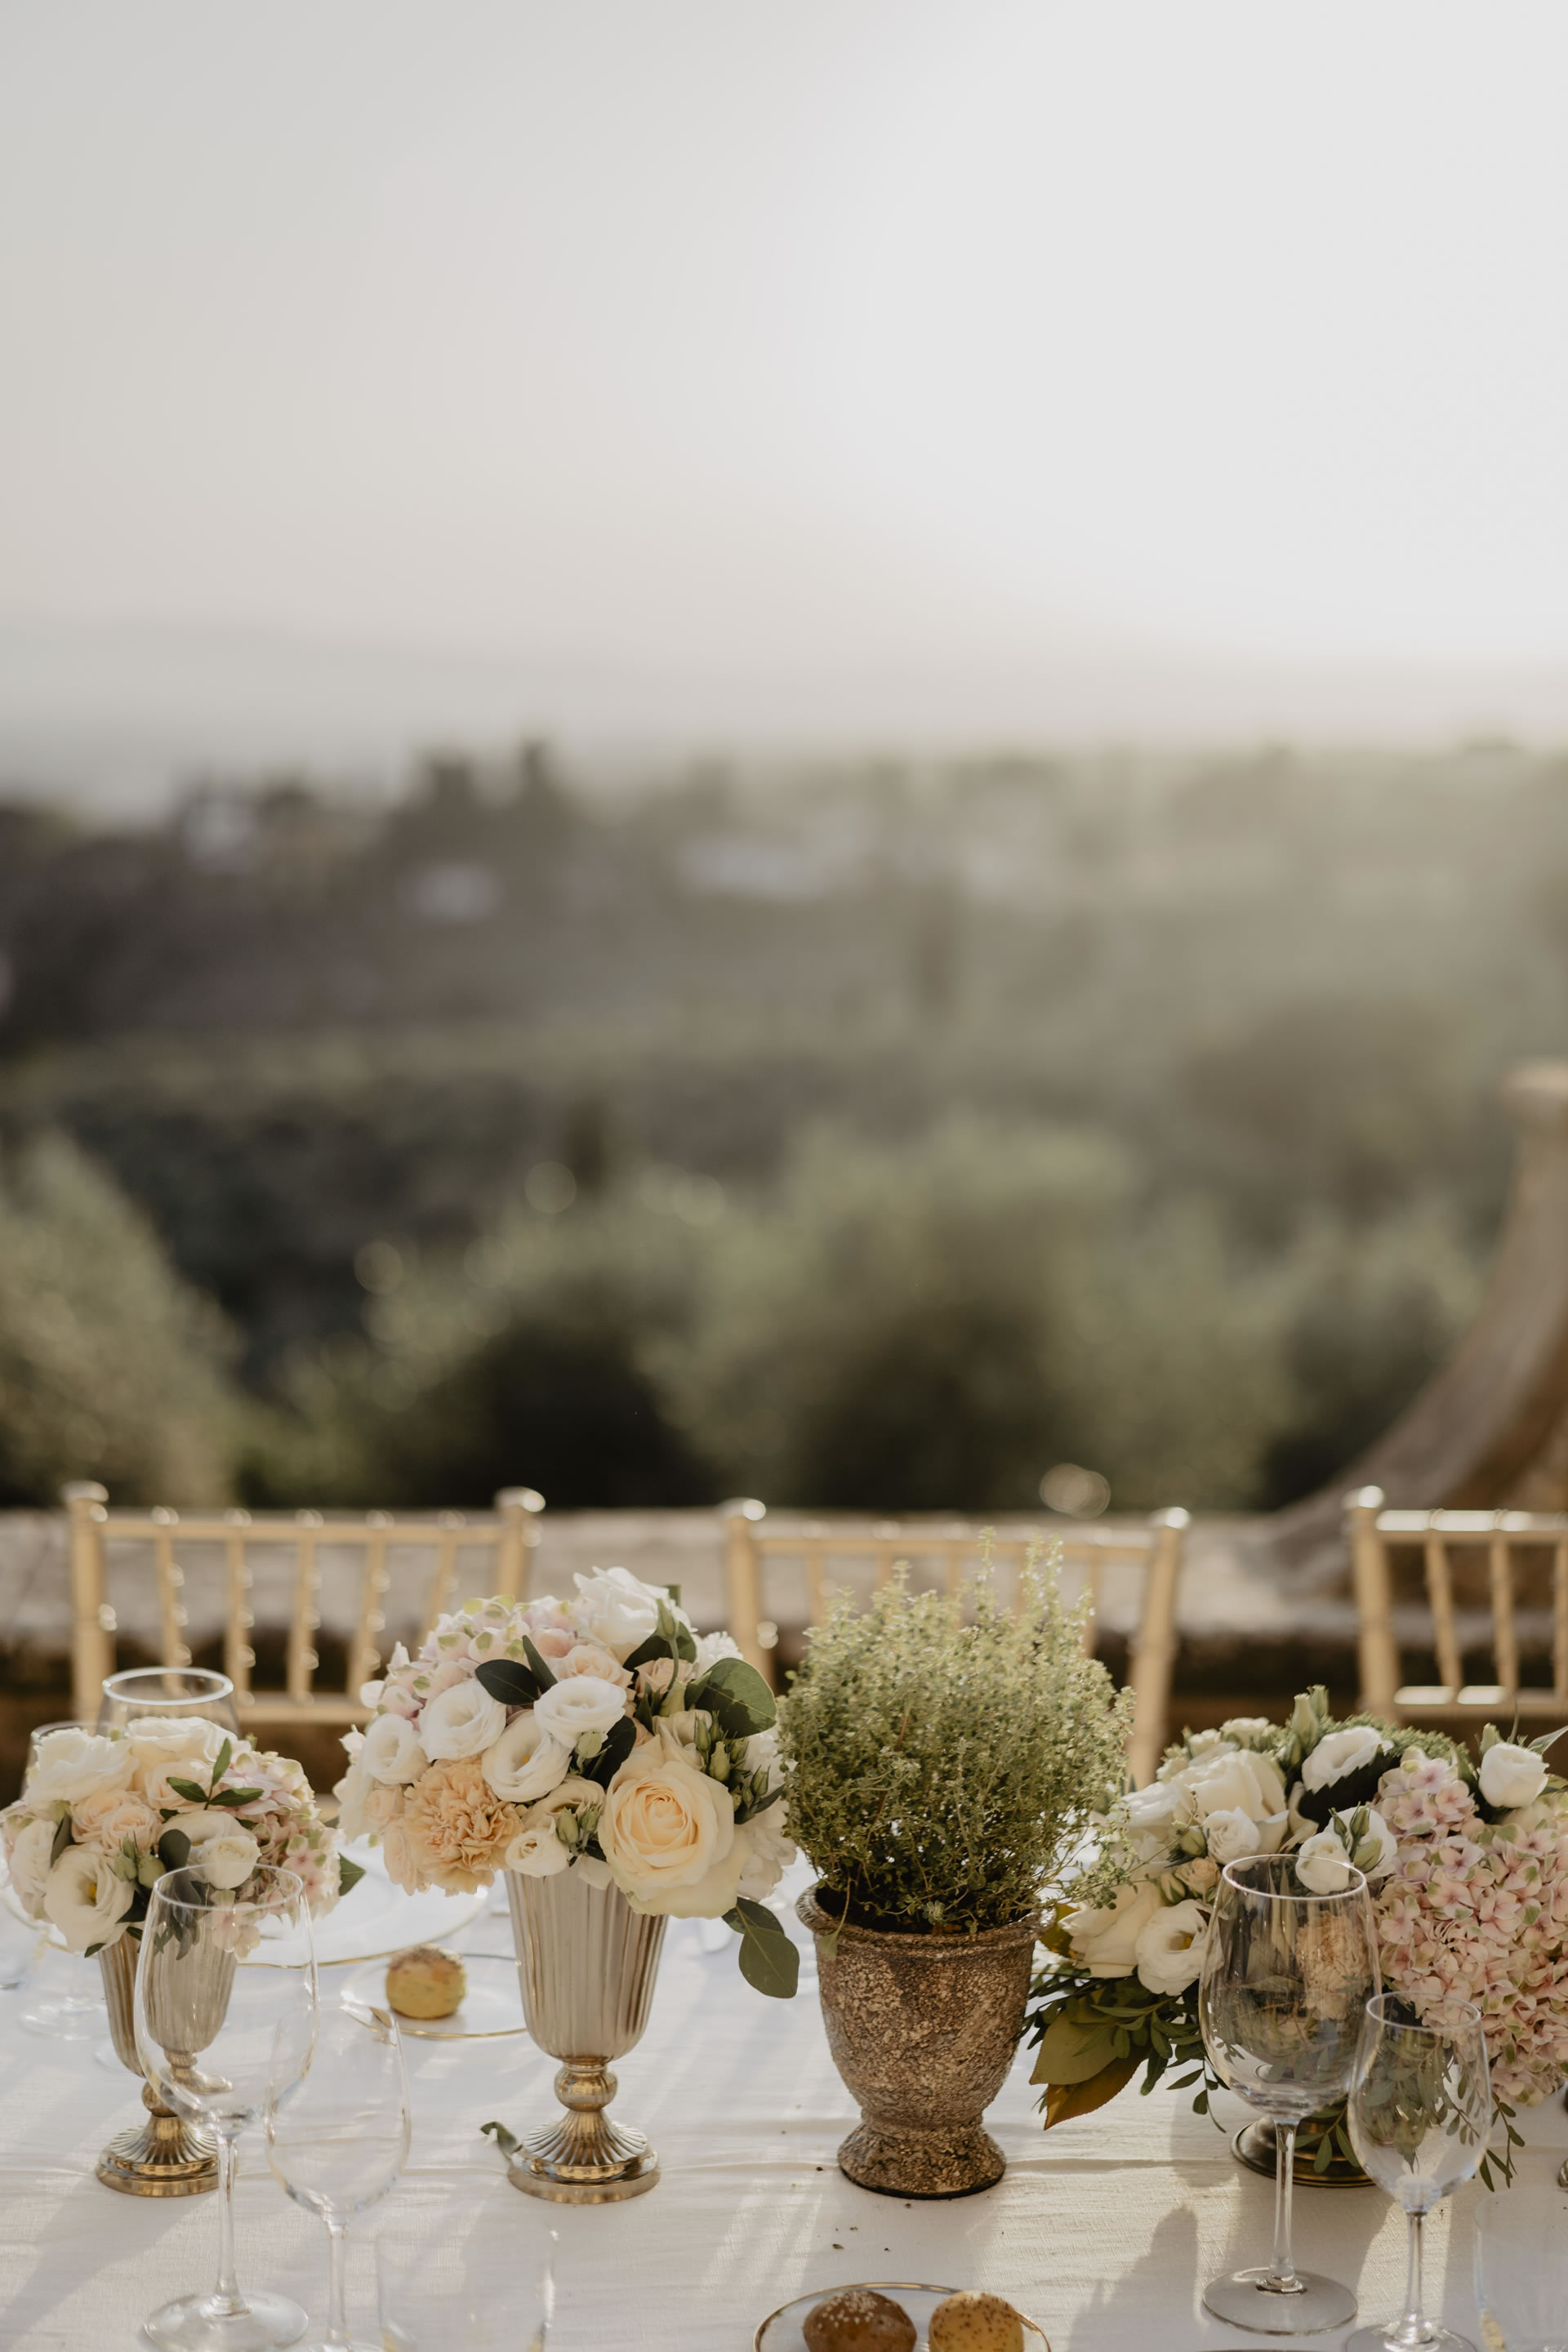 - 66 :: From Los angeles to Florence: a glamour asiatic wedding :: Luxury wedding photography - 65 ::  - 66